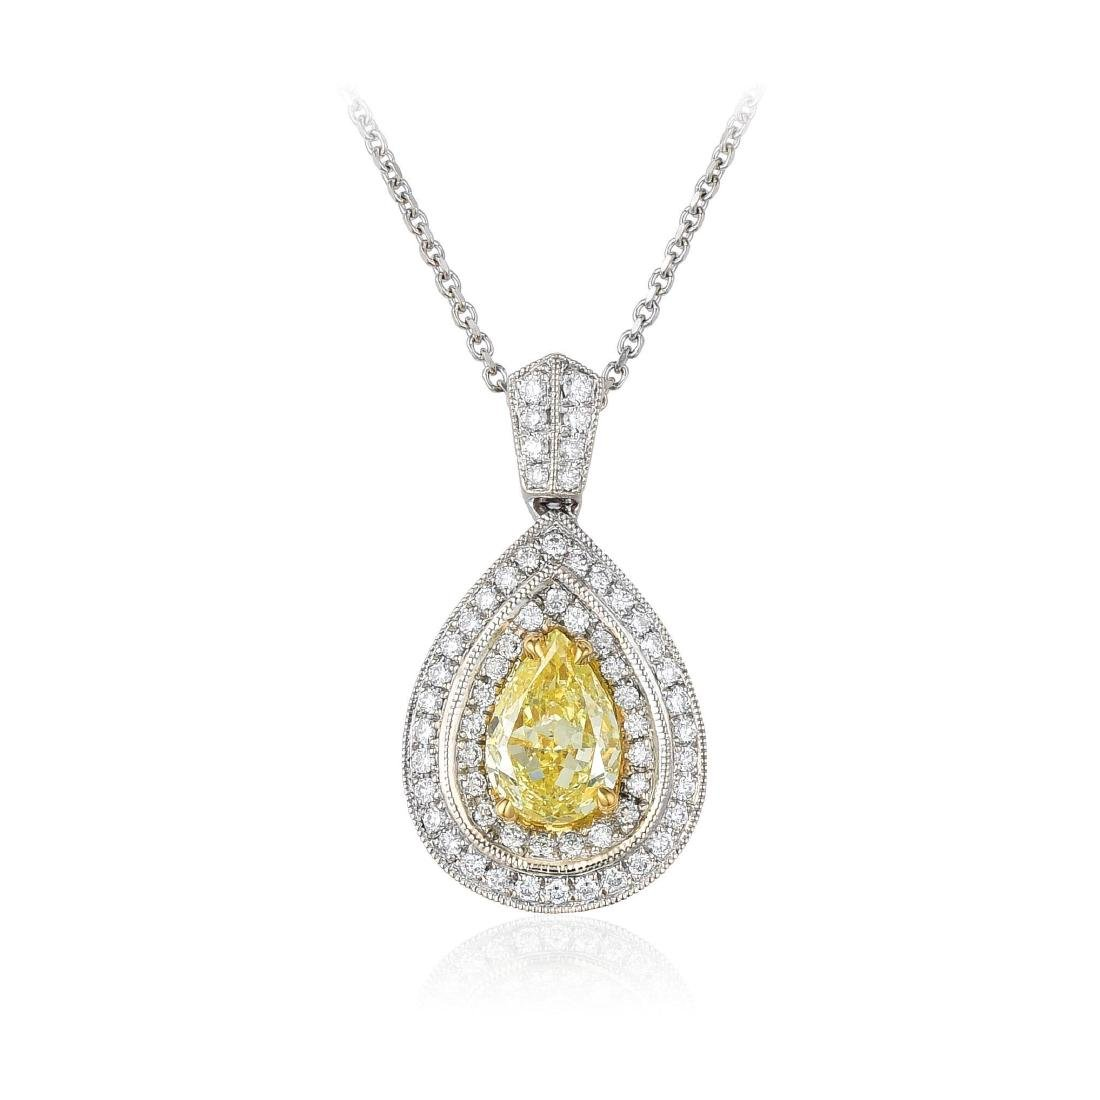 An 18K Gold Yellow Diamond Pendant Necklace